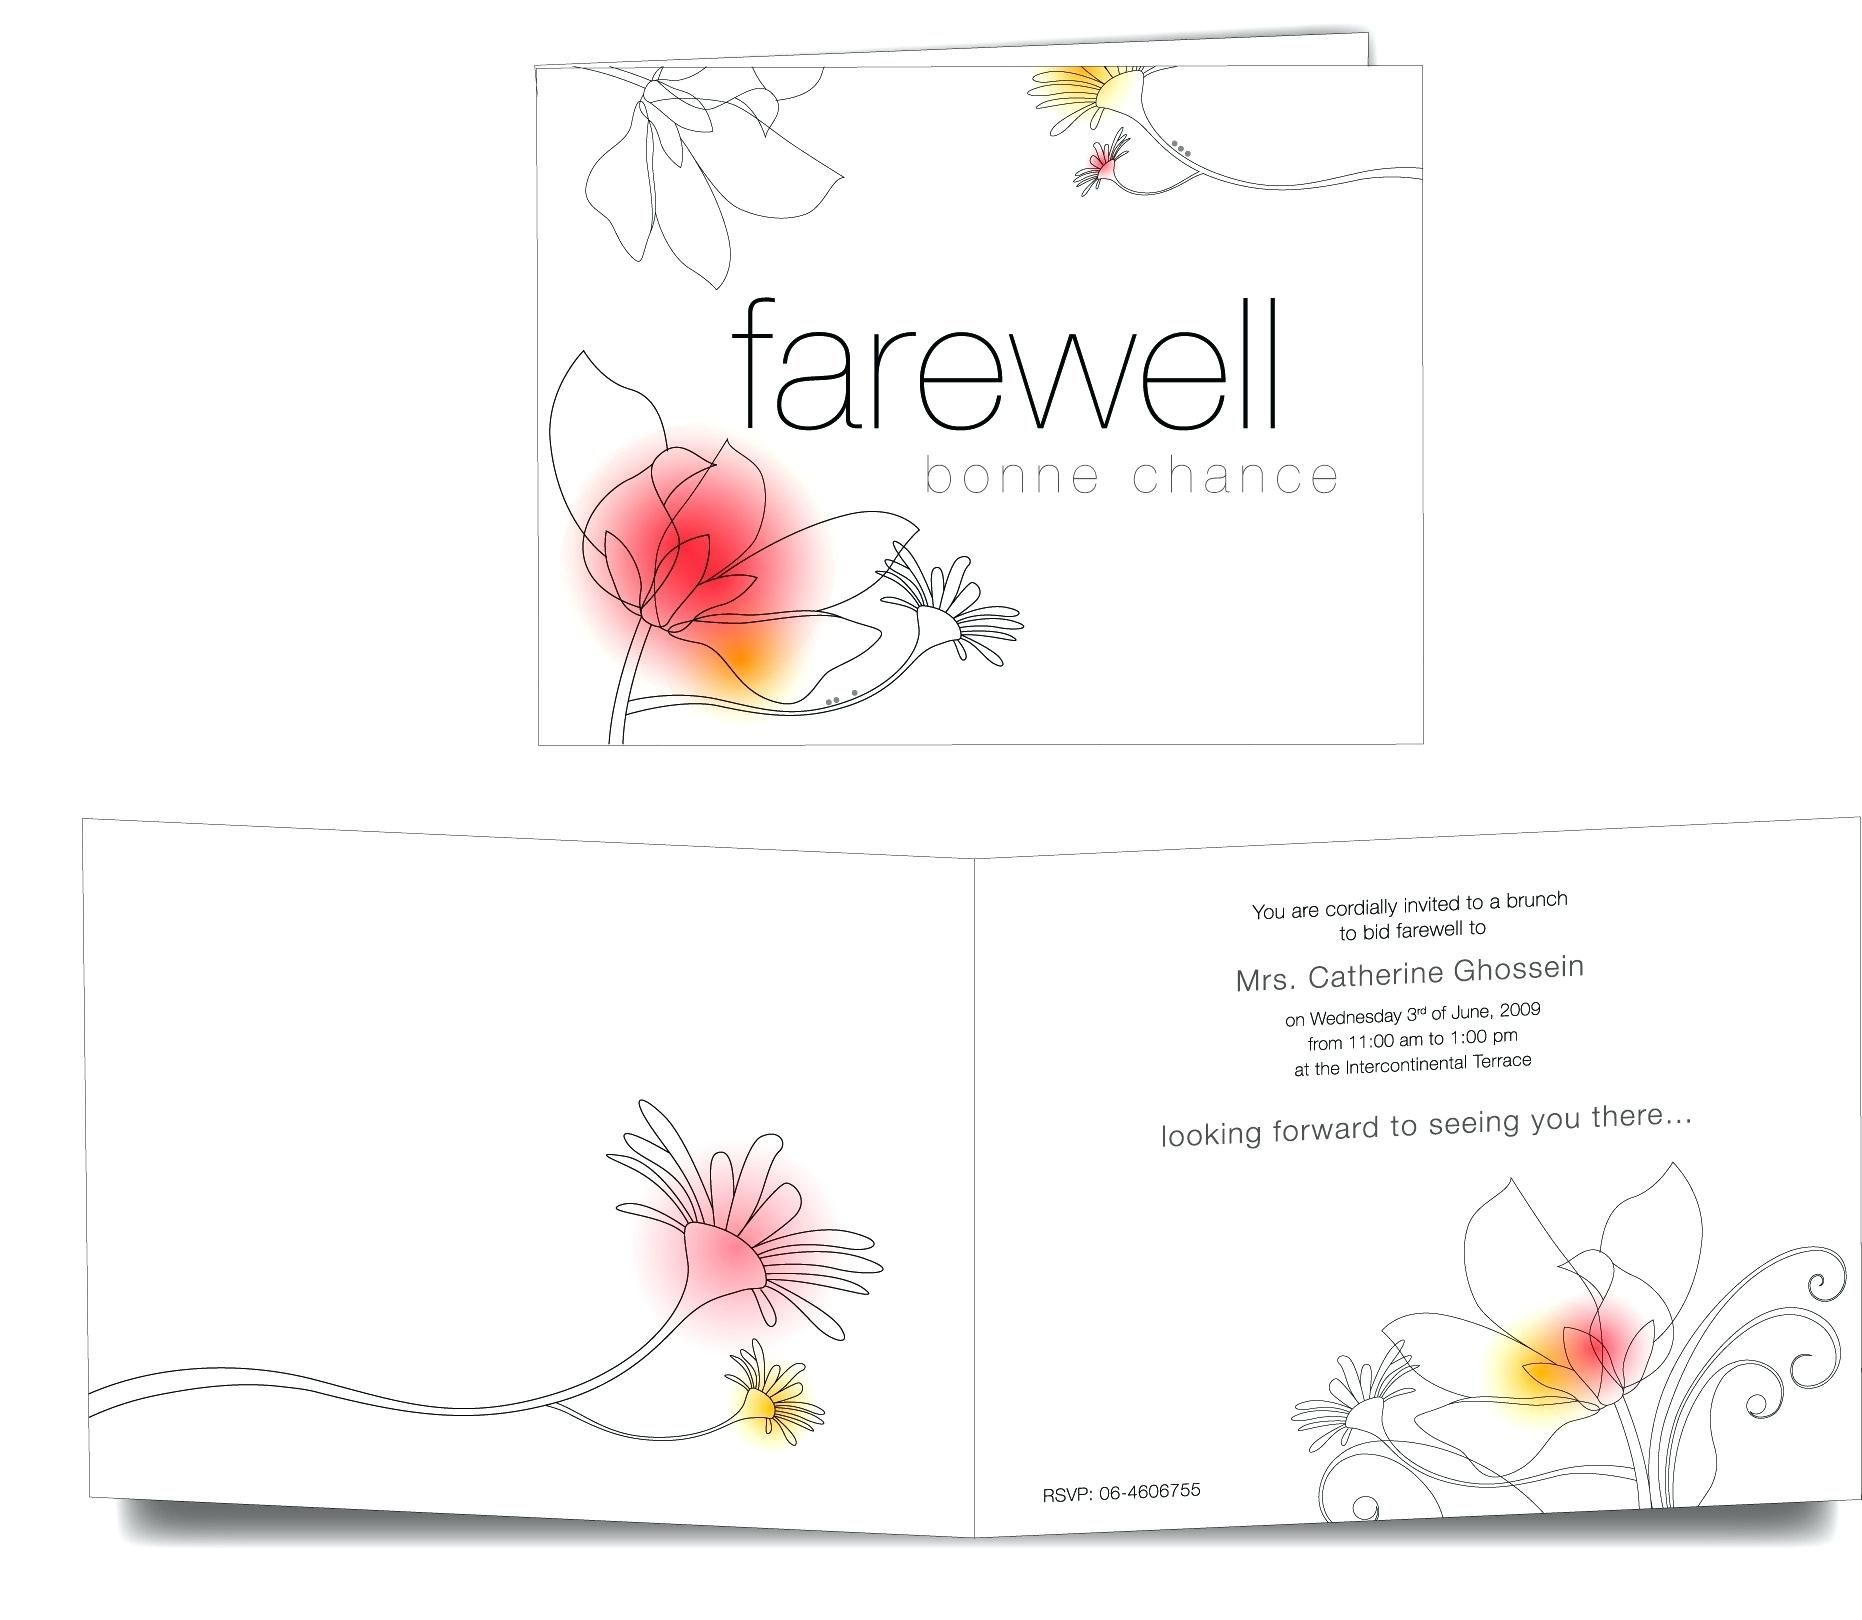 The Enchanting 013 Boss Farewell Invitation Daily Motivational Quotes Send Inside Farewell Invita Farewell Cards Party Invite Template Farewell Invitation Card